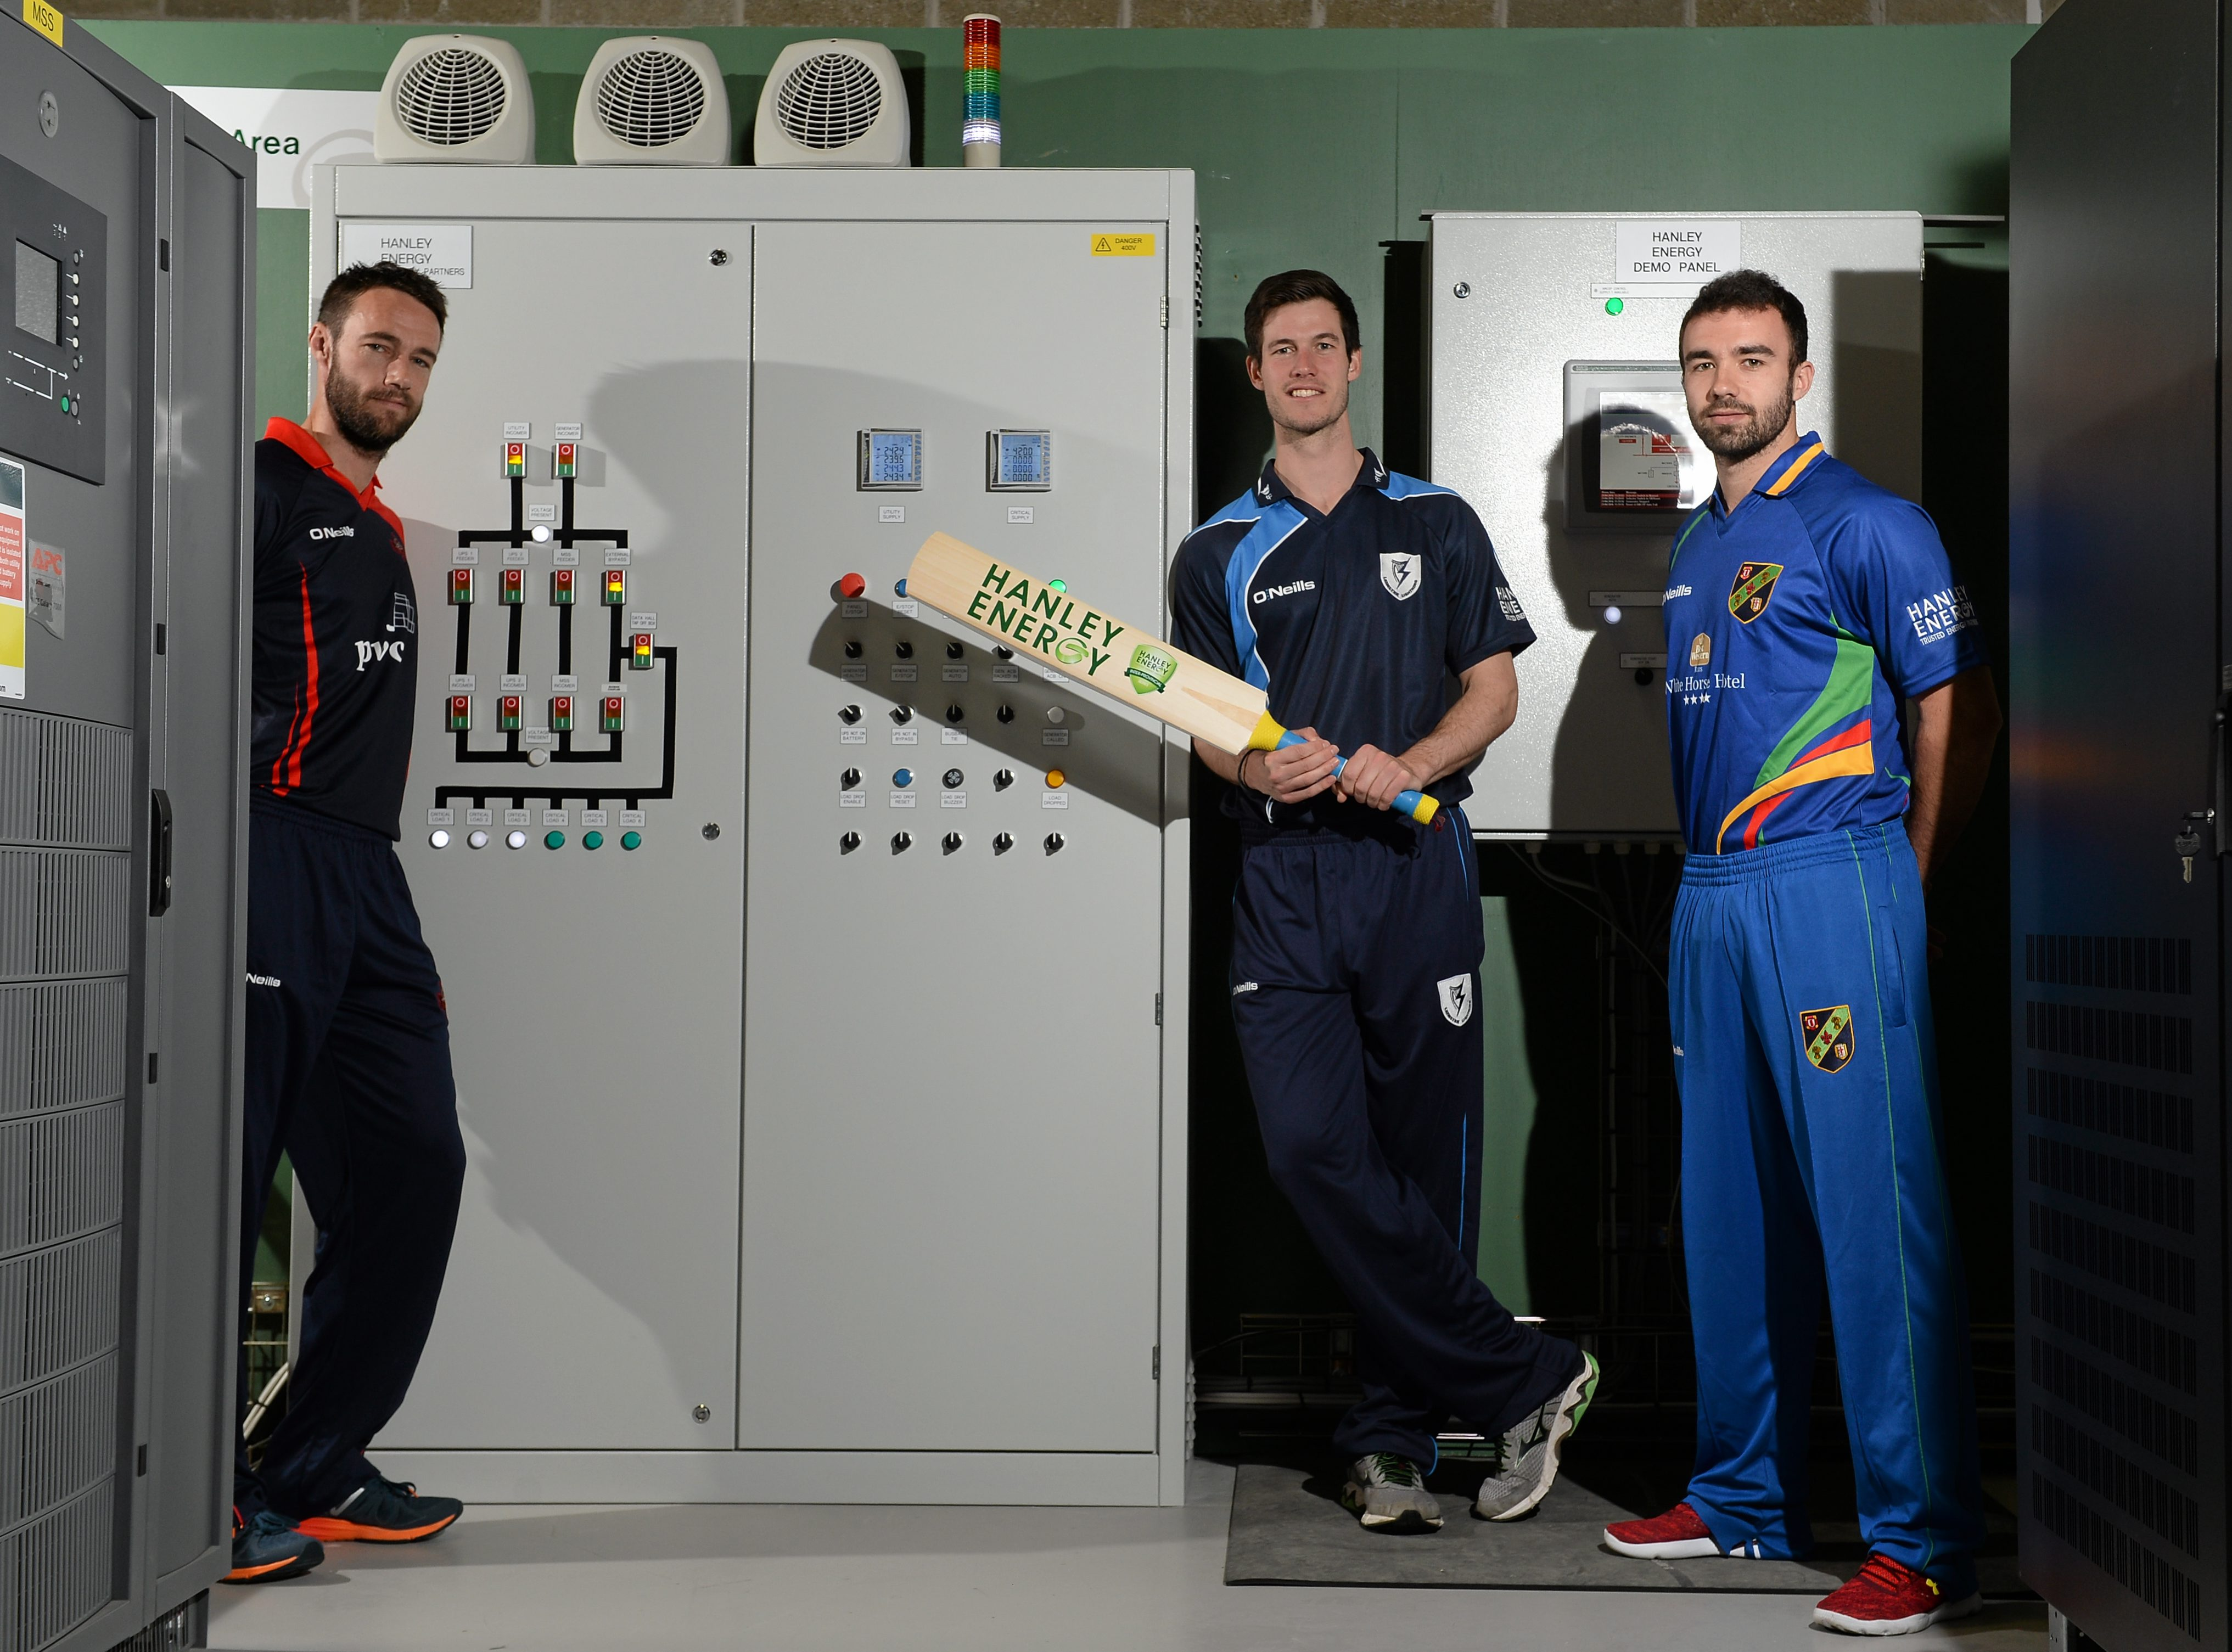 Northern Knights' Nigel Jones, Leinster Lightning's George Dockrell and North West Warriors' Stuart Thompson at the launch of the 2016 Hanley Energy Inter-Provincial Series at Hanley Energy's headquarters in Stamullen, Co. Meath.